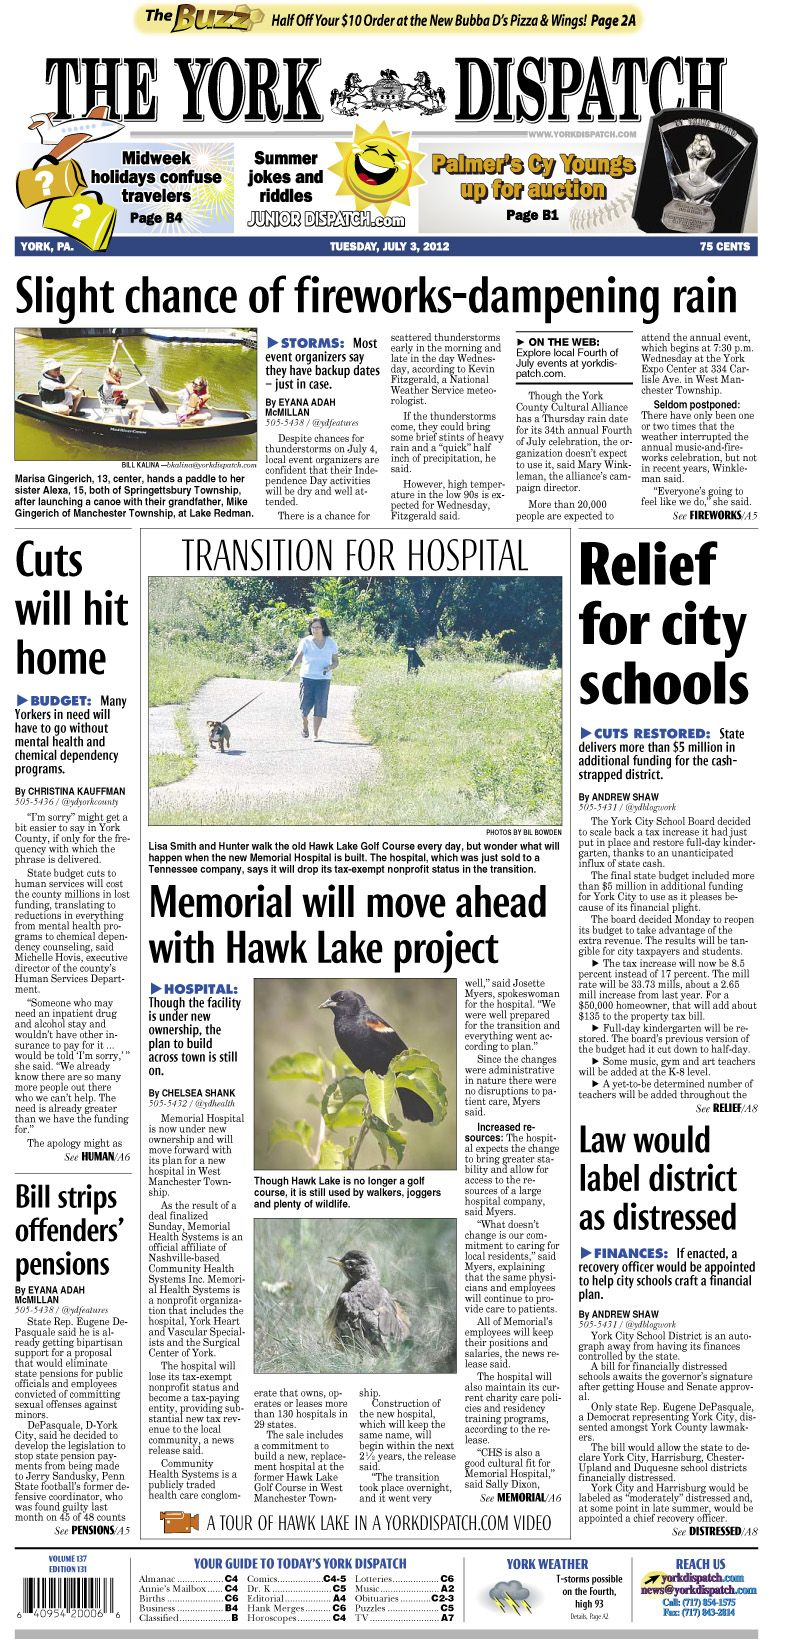 York Dispatch front page for July 3, 2012